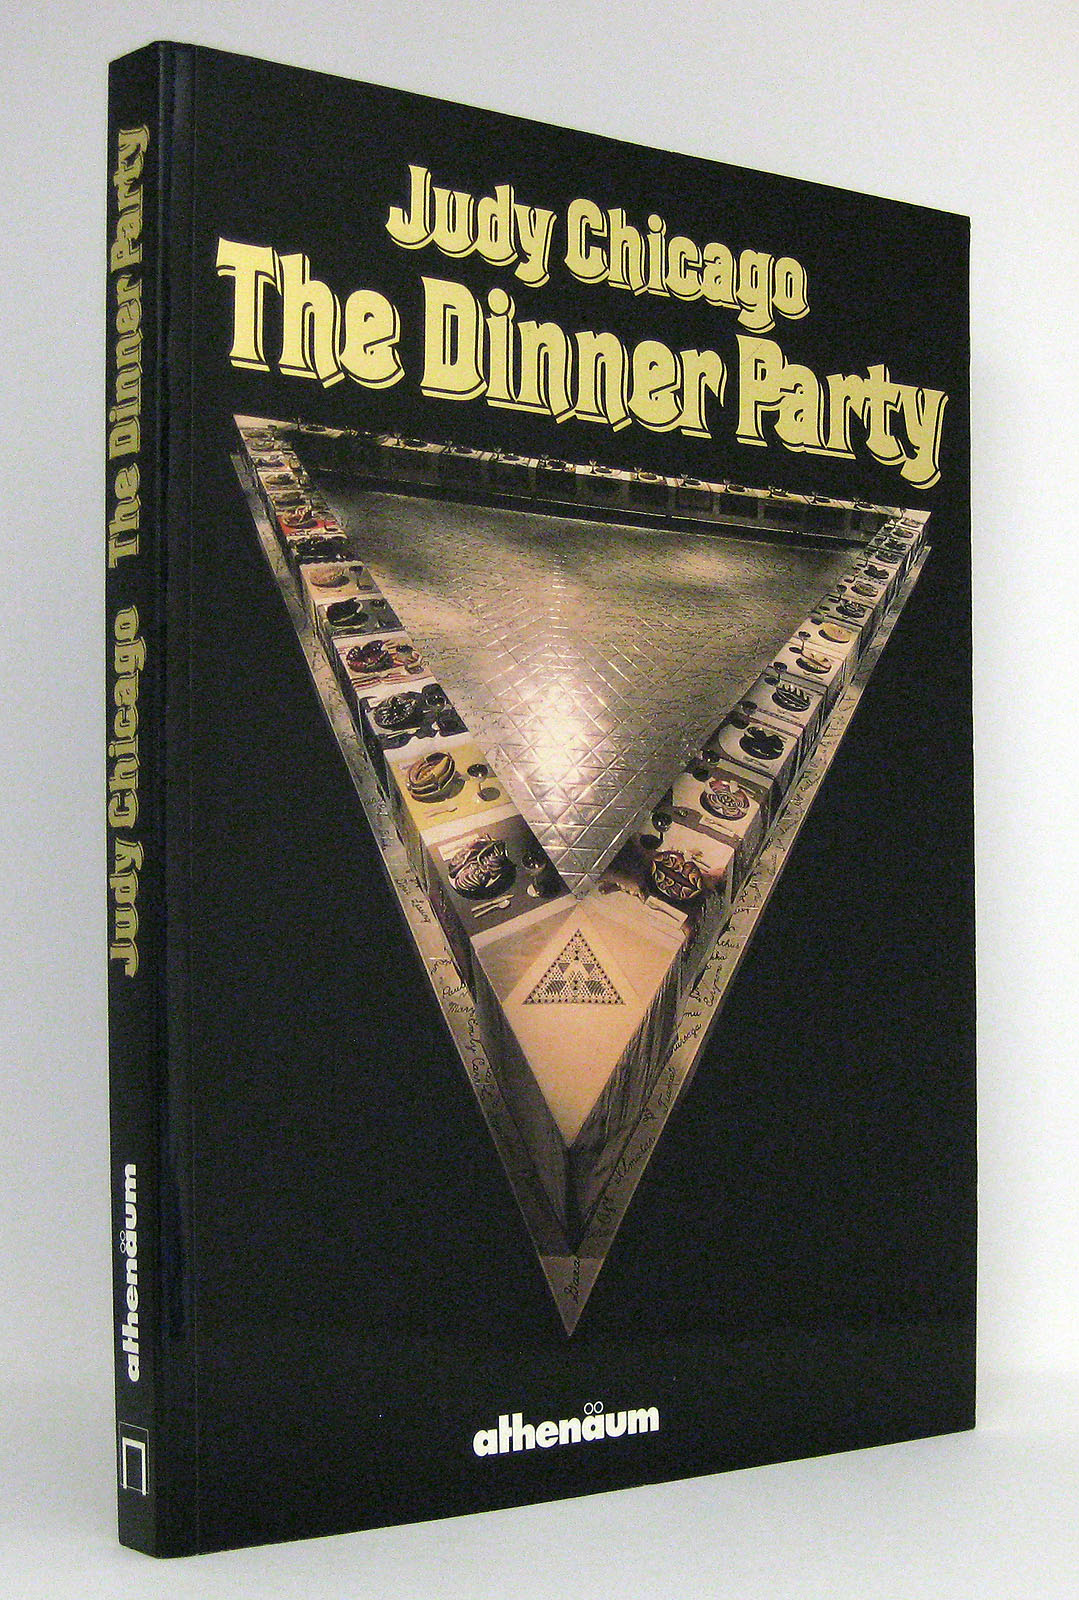 Judy Chicago - The Dinner Party : Katalog zur gleichnamigen Ausstellung in der Schirn Kunsthalle Frankfurt vom 1. Mai bis 21. Juni 1987 - Chicago, Judy [Illustrationen] Vitali, Christoph [Hg.]